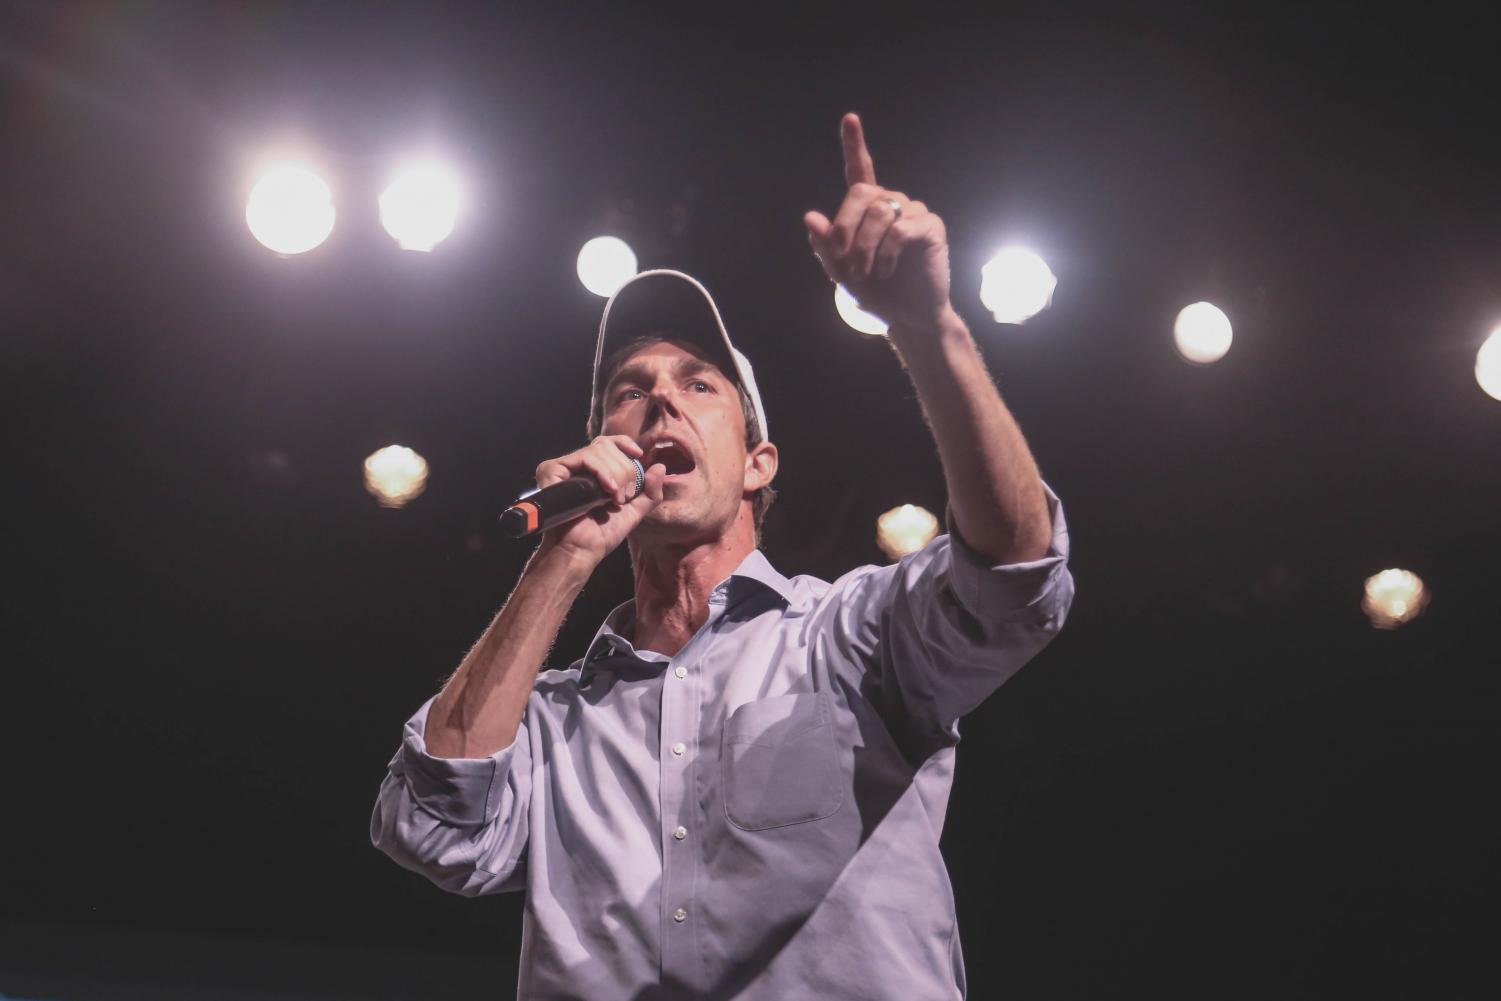 Beto+speaks+to+his+supporters+at+the+Magoffin+Auditorium+for+his+final+rally+before+election+day+on+Monday%2C+Nov.+5.+